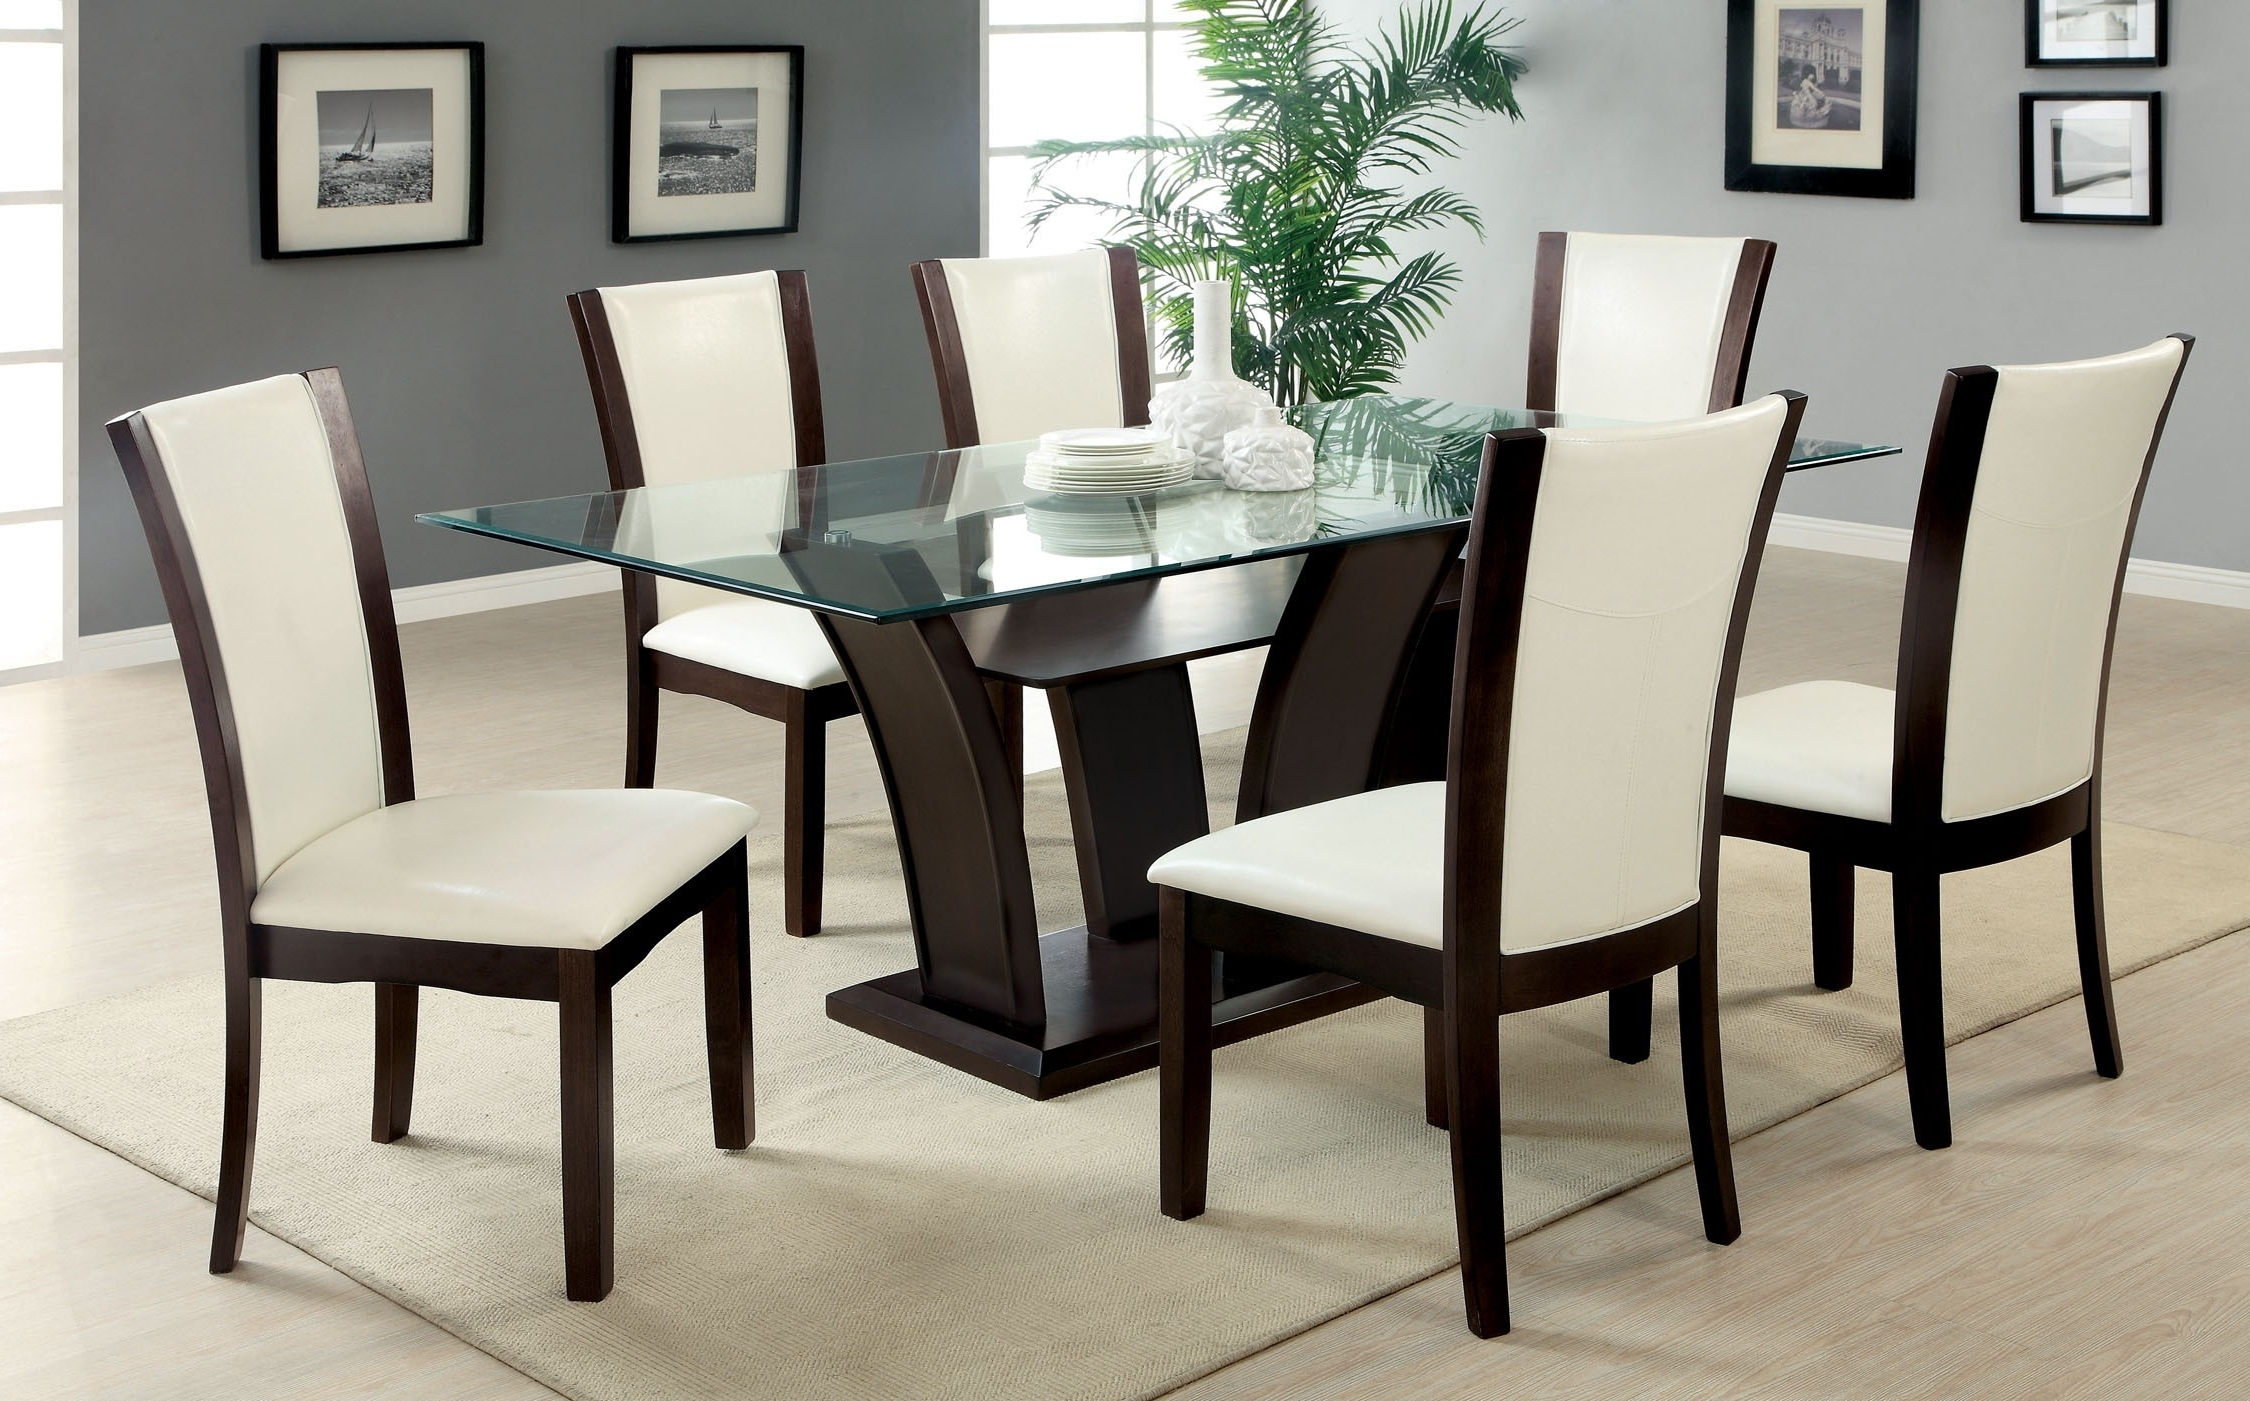 Glass Dining Table Sets 6 Chairs • Table Setting Ideas Within Most Recent Glass Dining Tables With 6 Chairs (View 10 of 25)